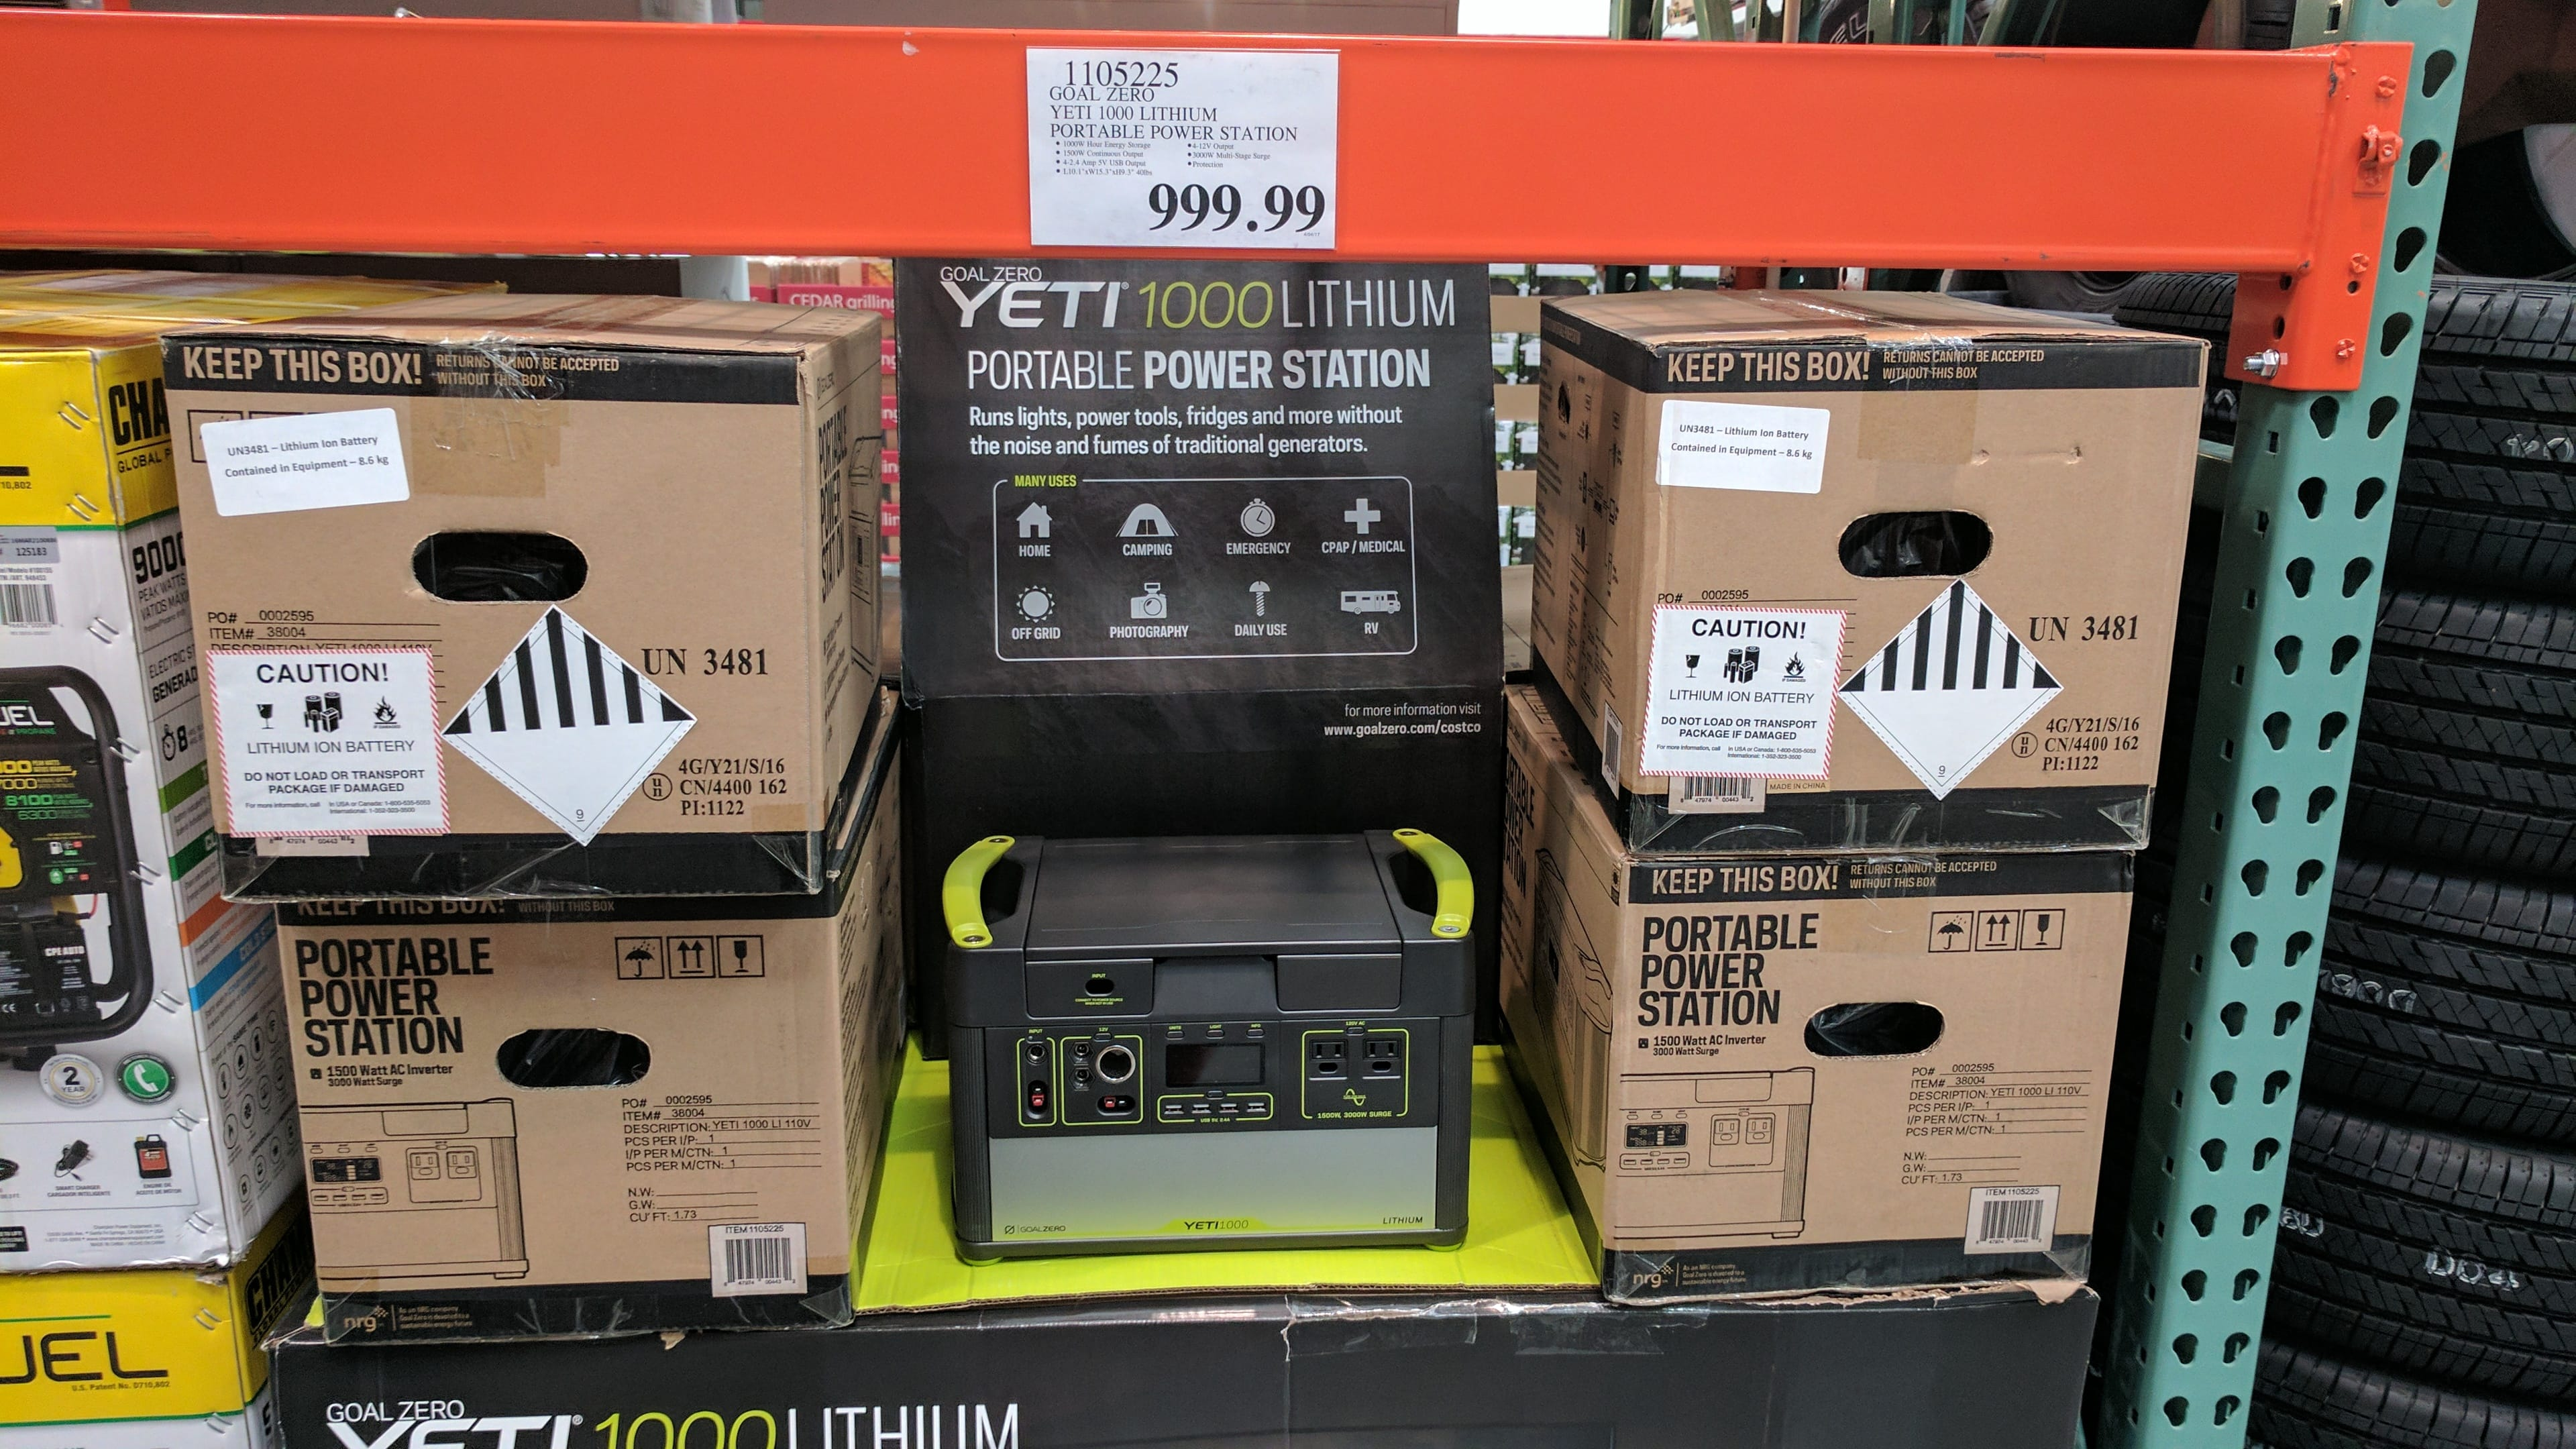 Costco: Goal Zero Yeti 1000 Lithium Portable Power Station $1000